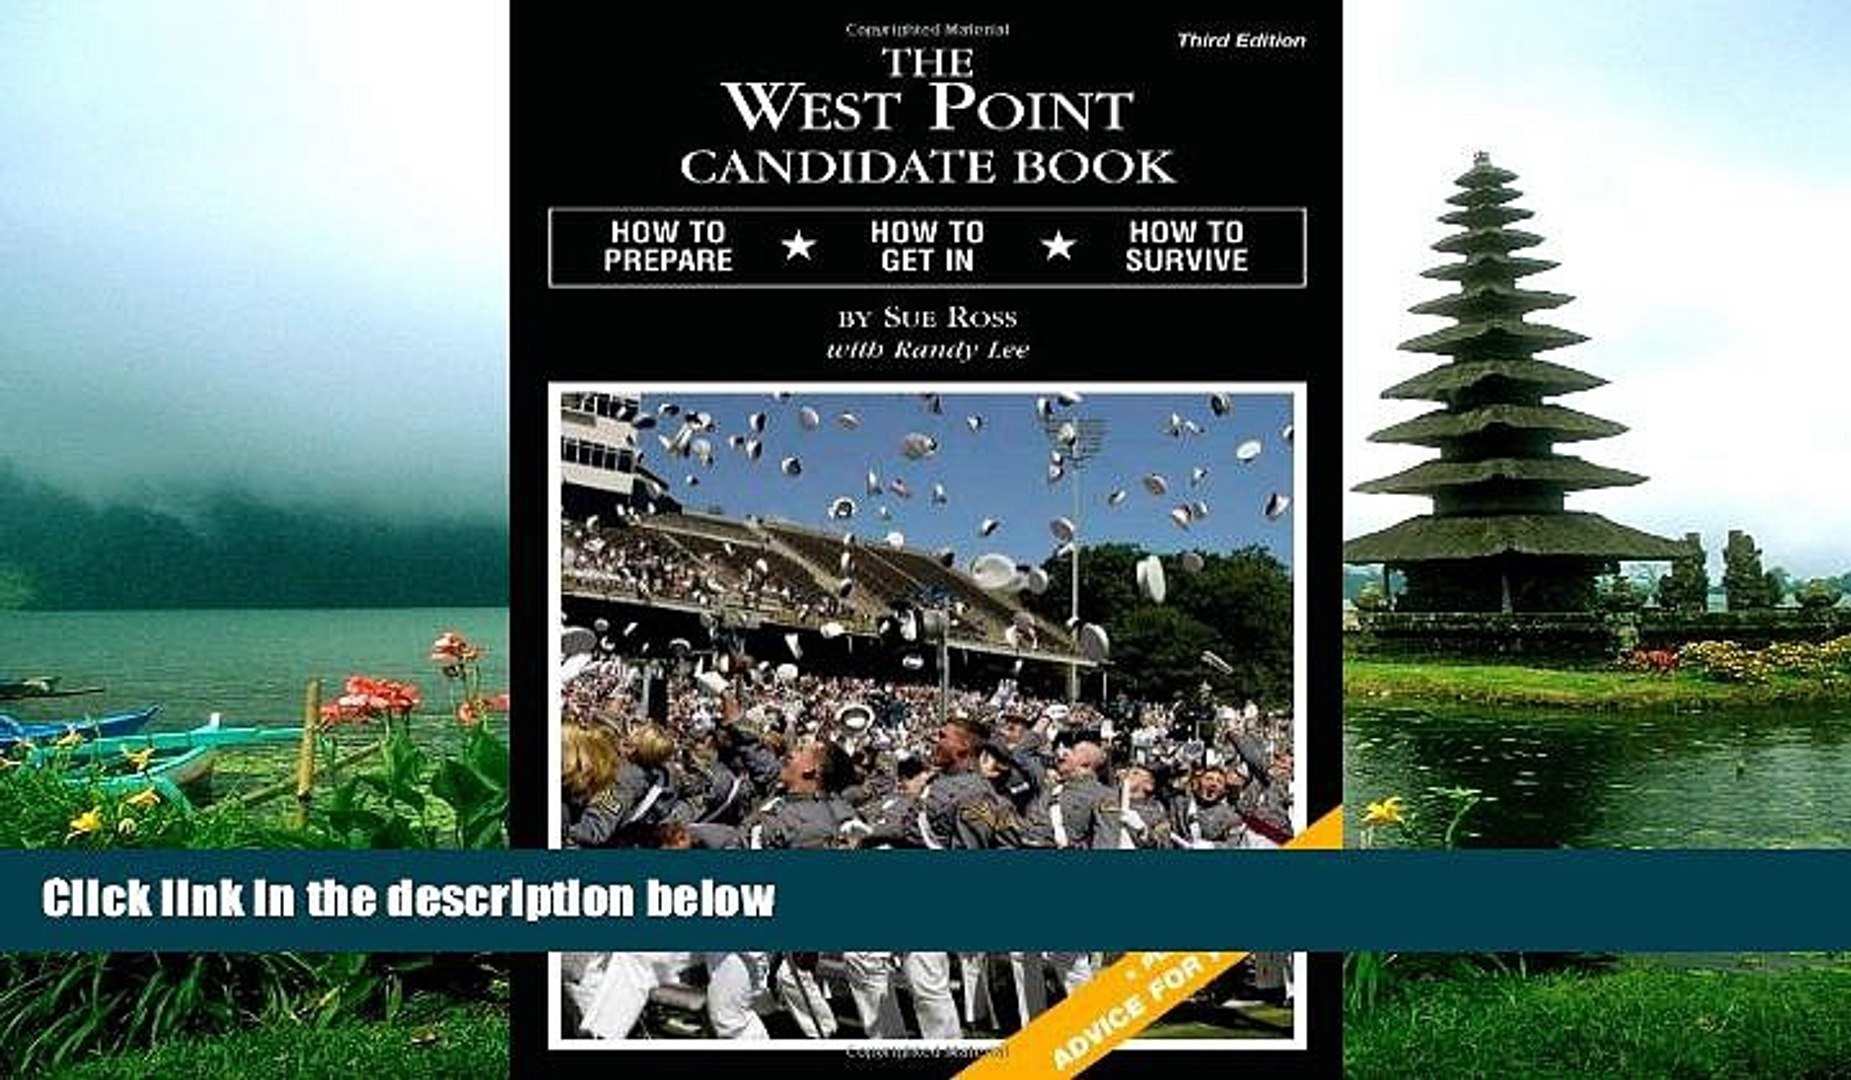 Enjoyed Read The West Point Candidate Book: How to Prepare, How to Get In, How to Survive